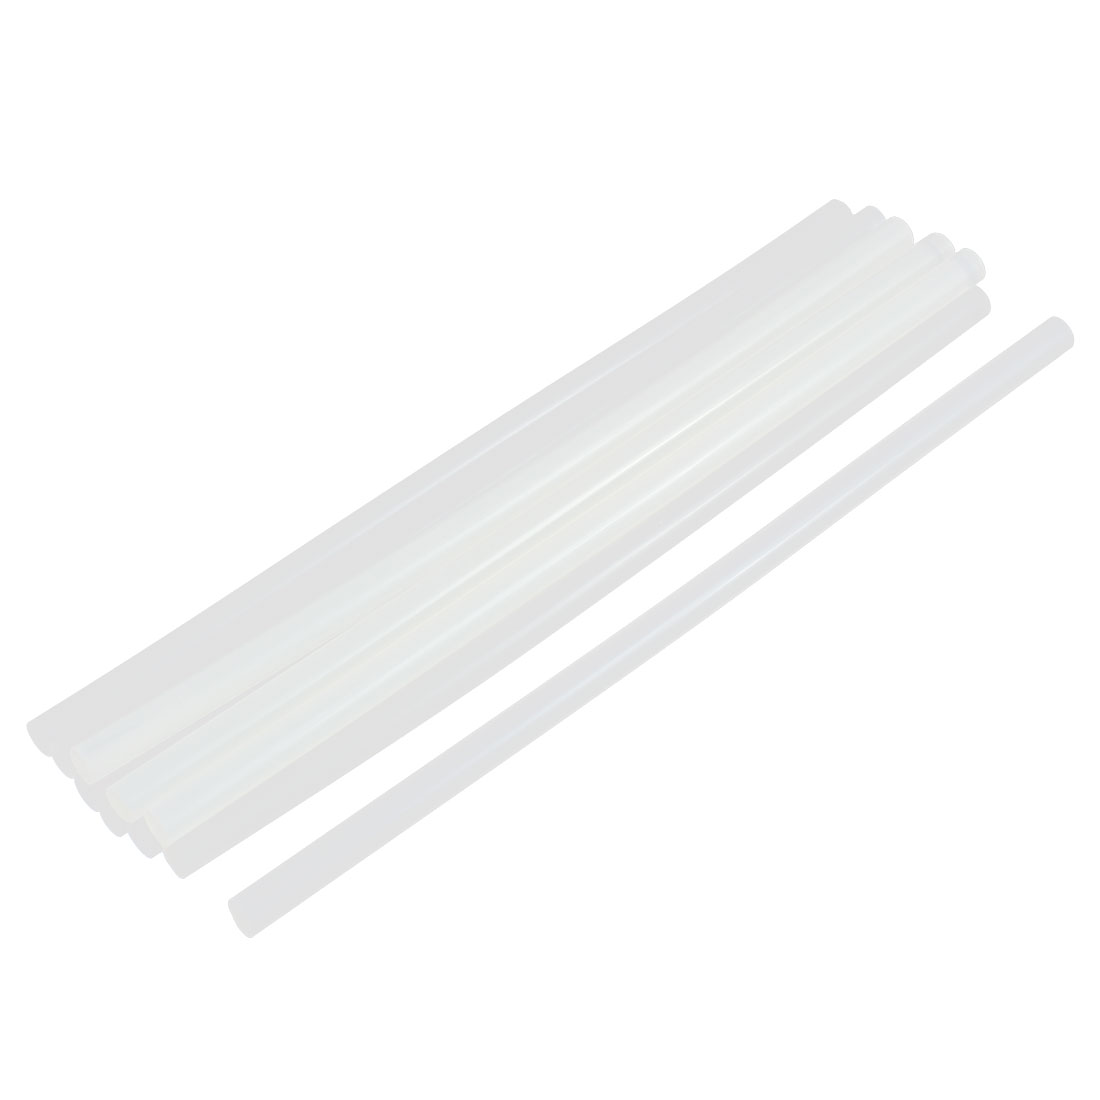 10 Pcs Hot Melt Glue Adhesive Sticks 200mm x 7mm for Electric Heating Gun